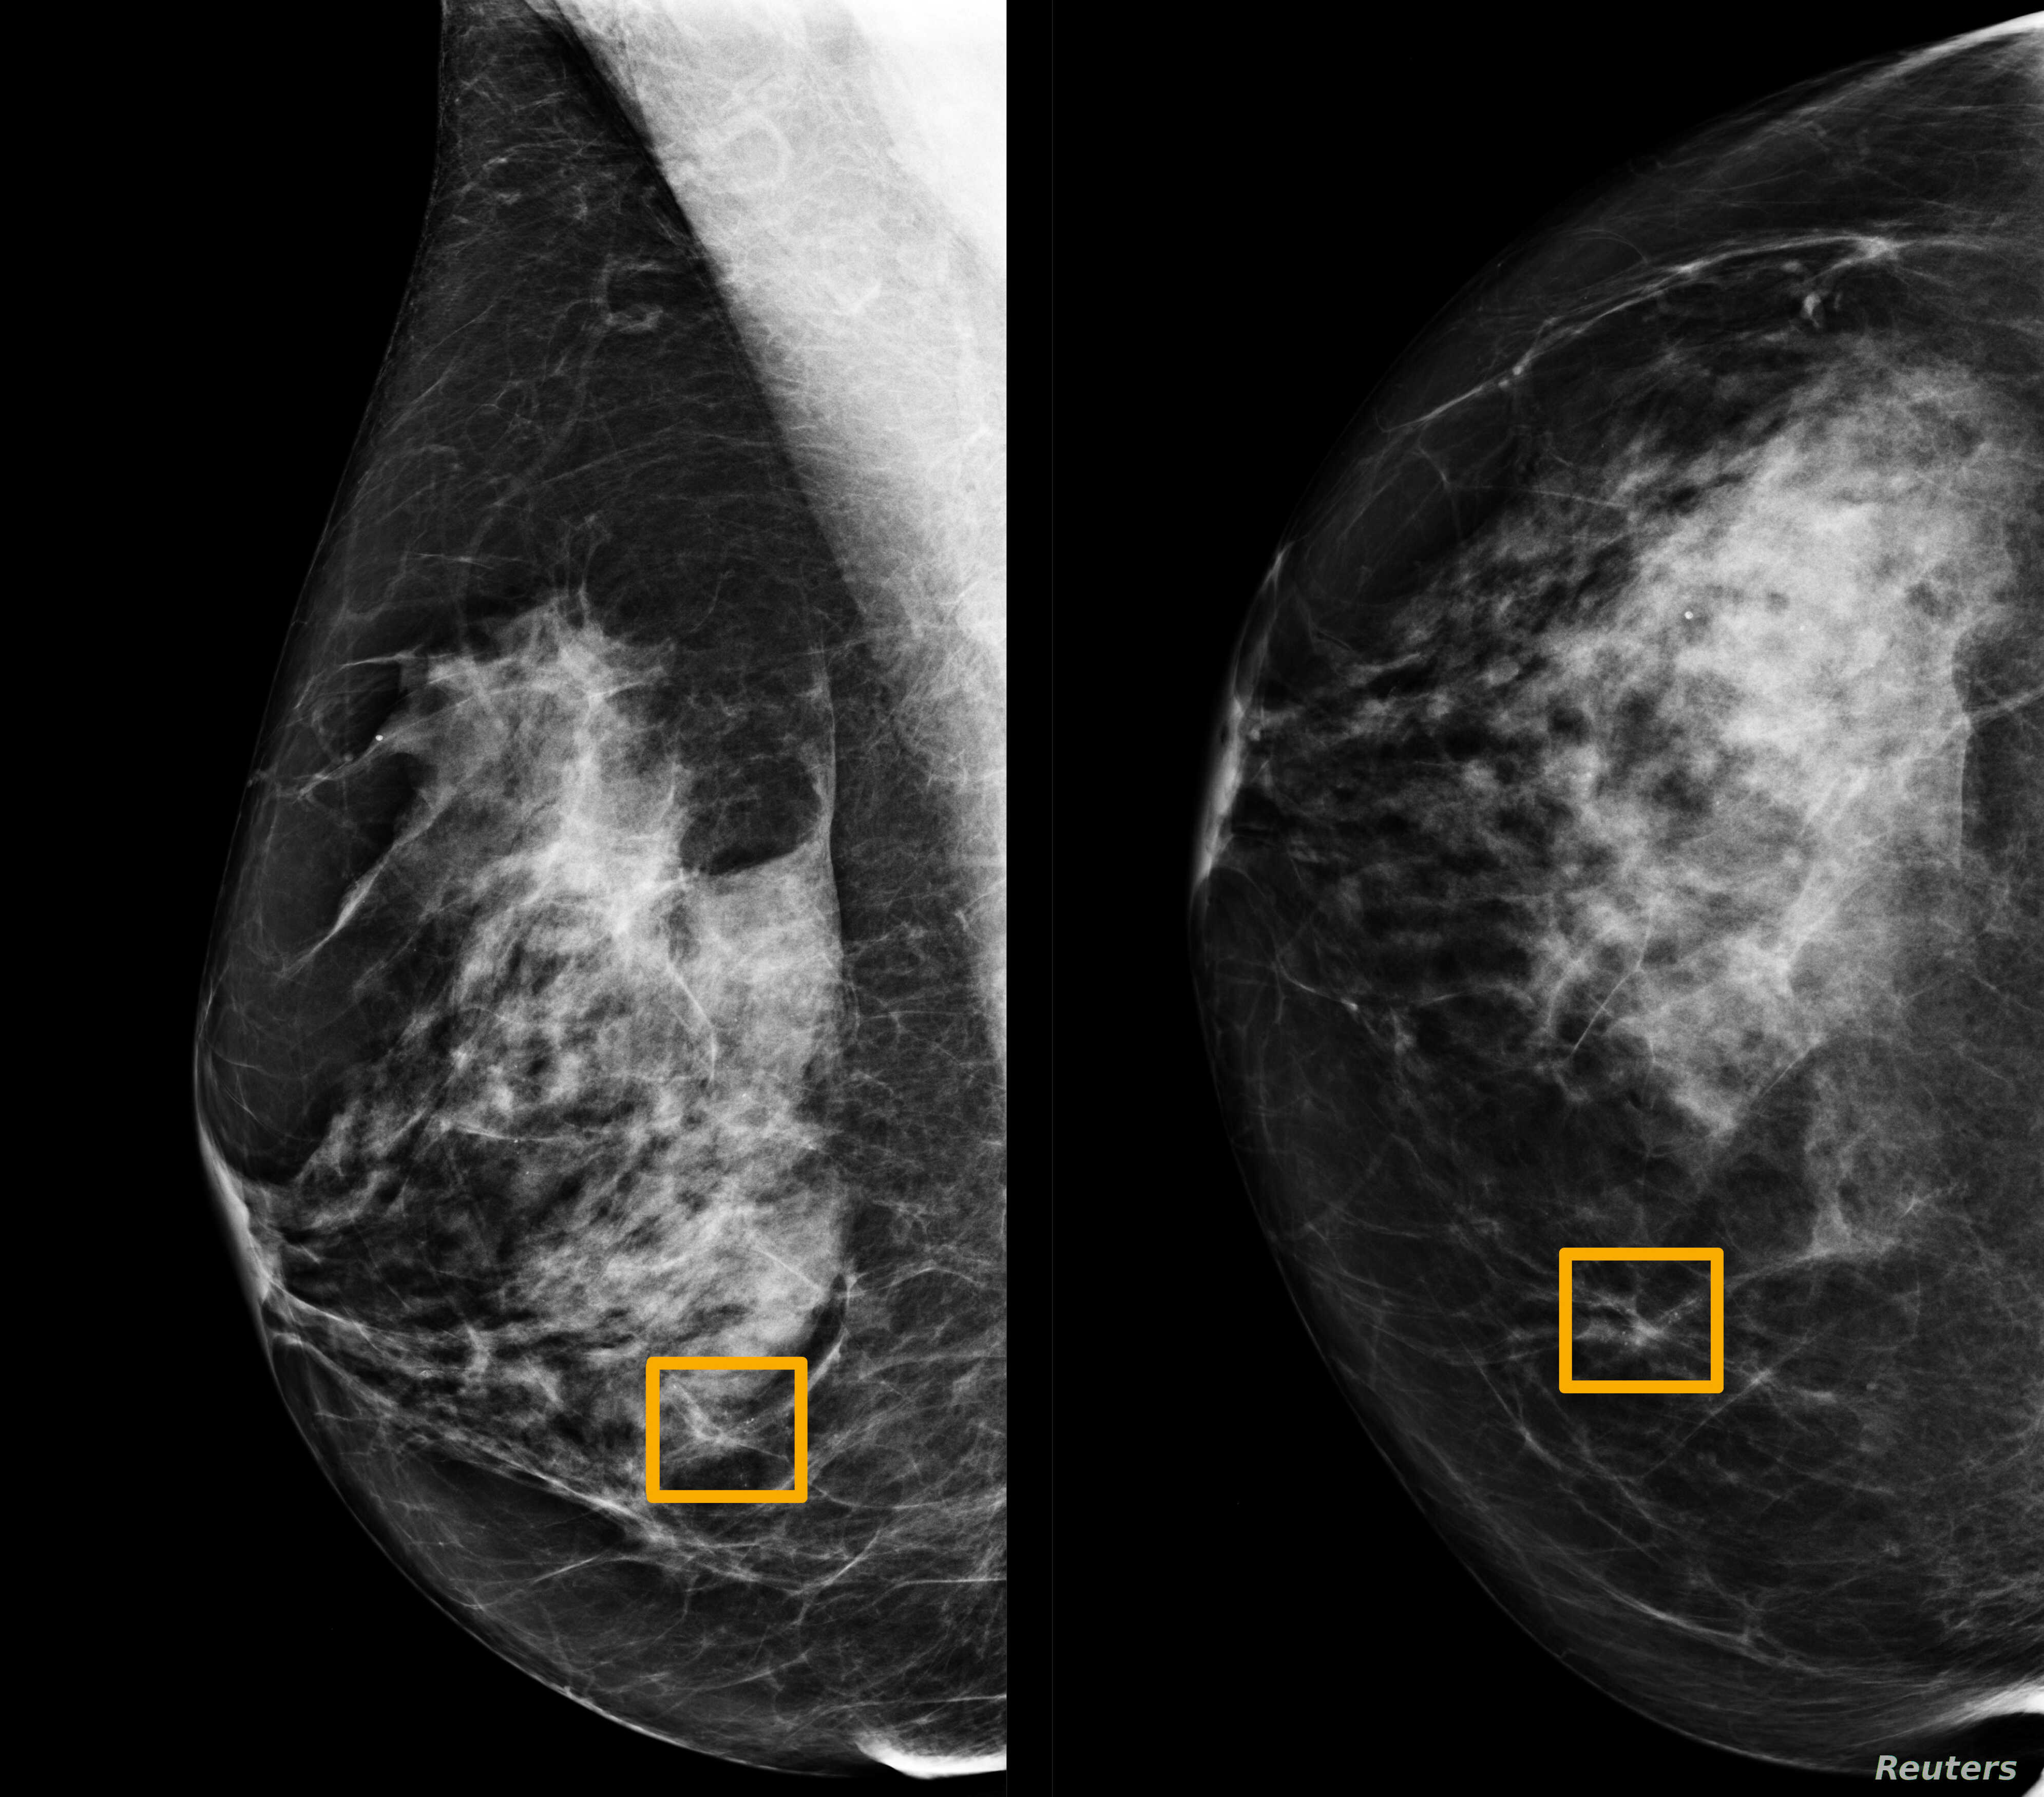 Study Finds Google System Could Improve Breast Cancer Detection